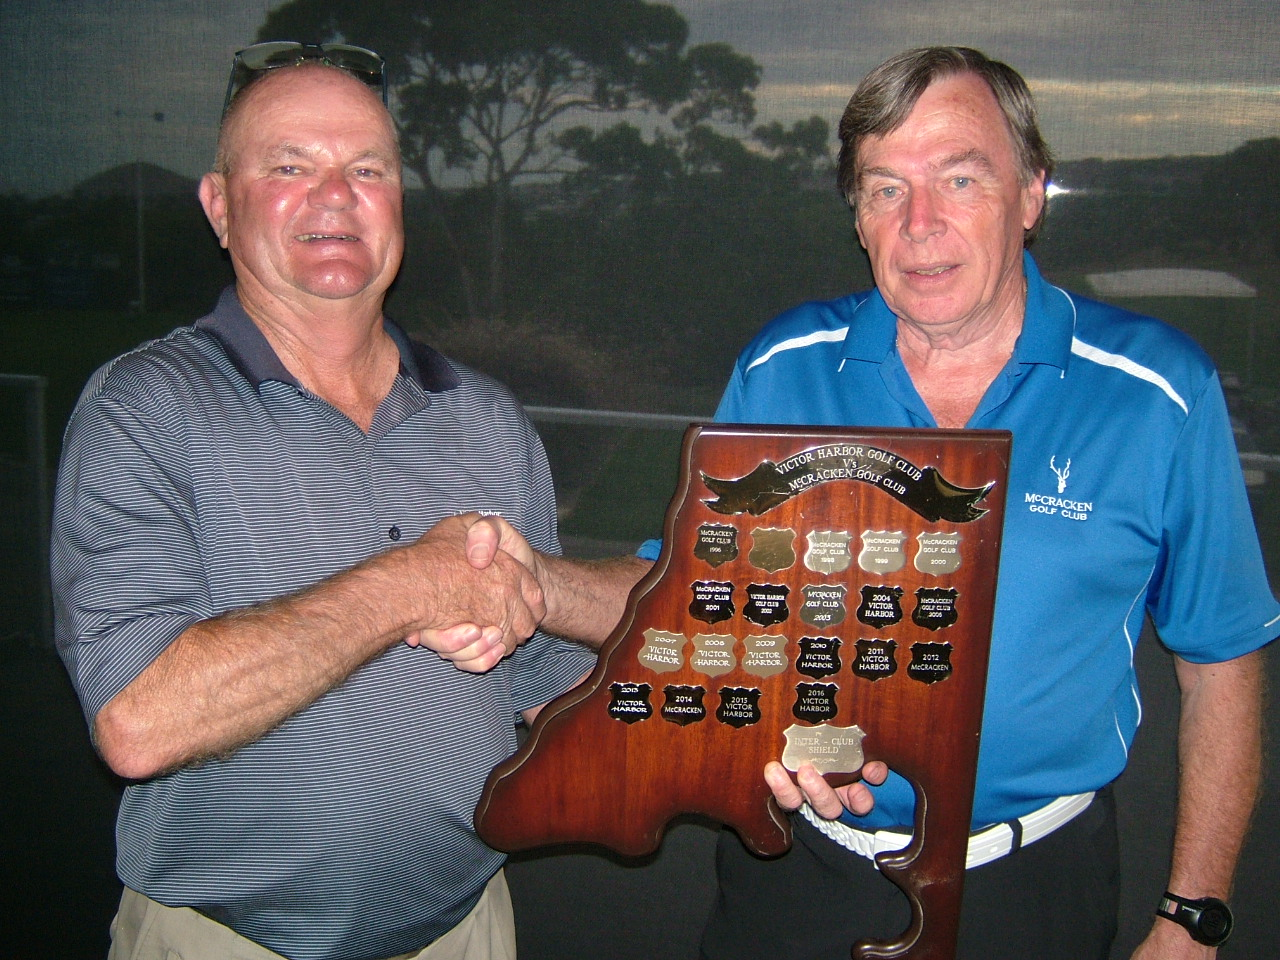 Photos attached show David HOLIS (VHGC Capt – Left) retaining the Men's trophy from John HARTMAN (McCracken Capt)